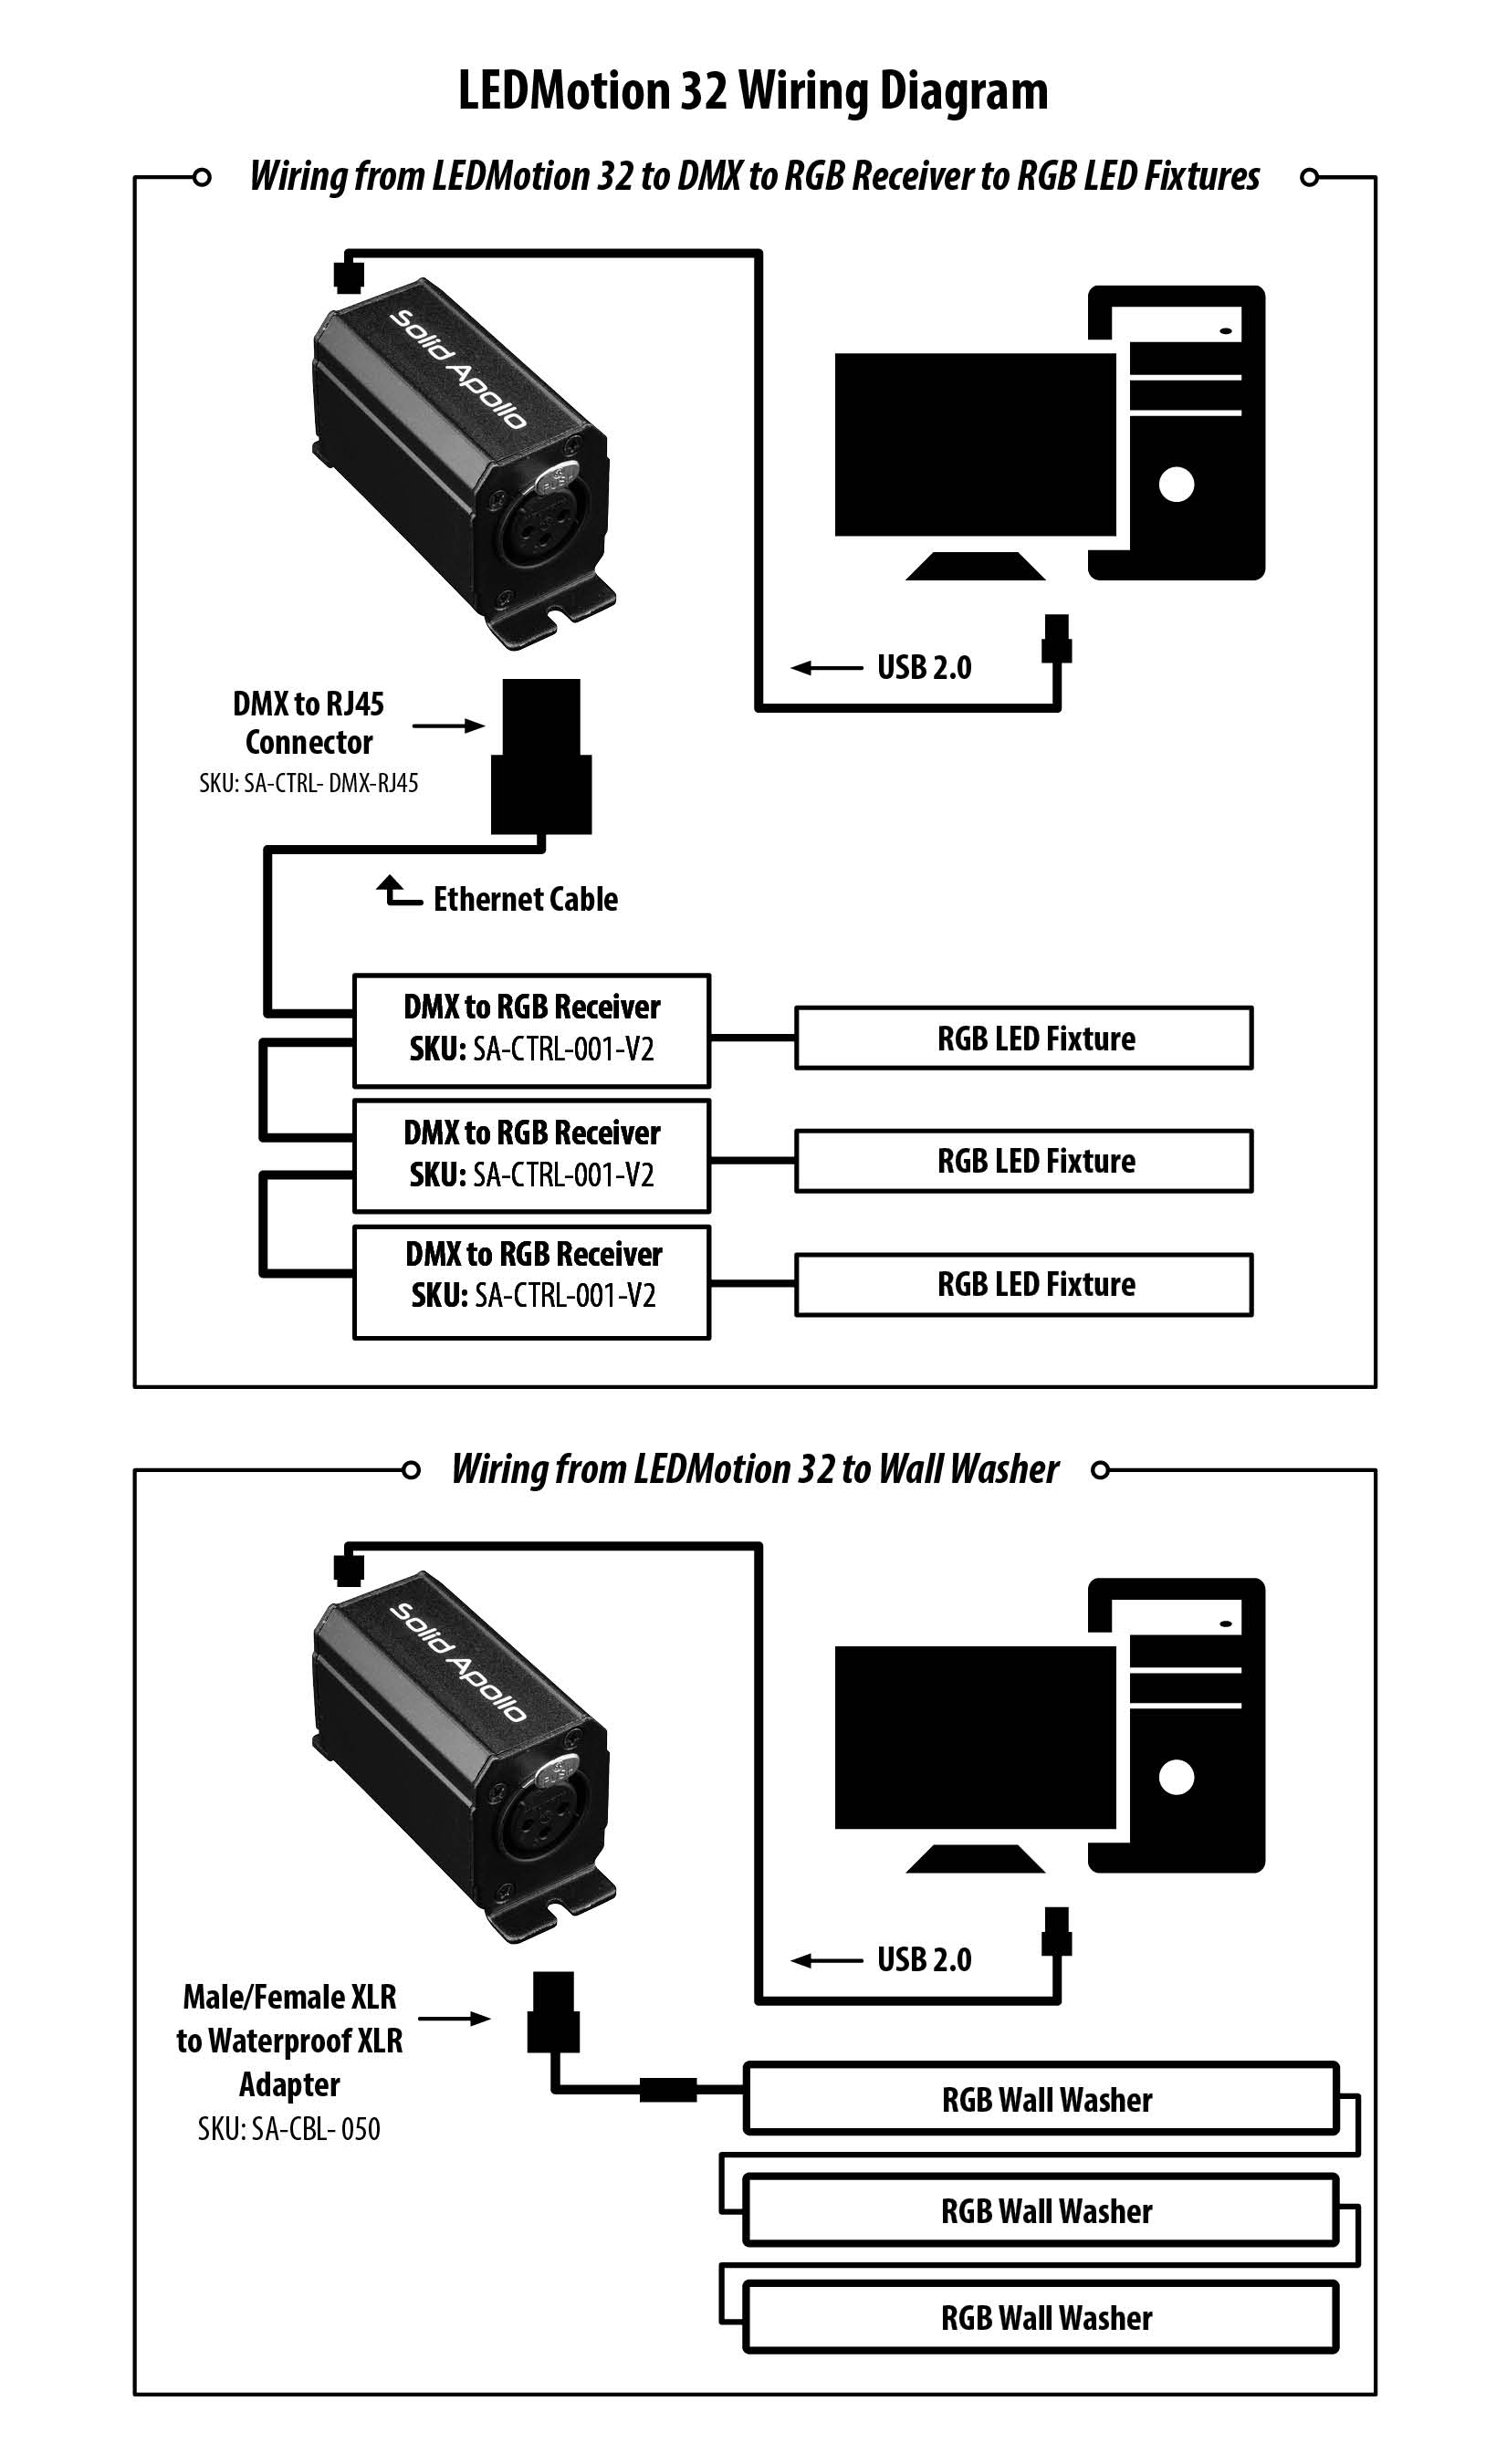 Usb Wiring | Wiring Diagram Database on usb wire diagram and function, usb to micro usb pinout diagram, usb to keyboard wiring diagram, rj45 ethernet cable wiring diagram, usb plug wiring diagram, usb to serial cable pinout, usb to rs232 pinout,